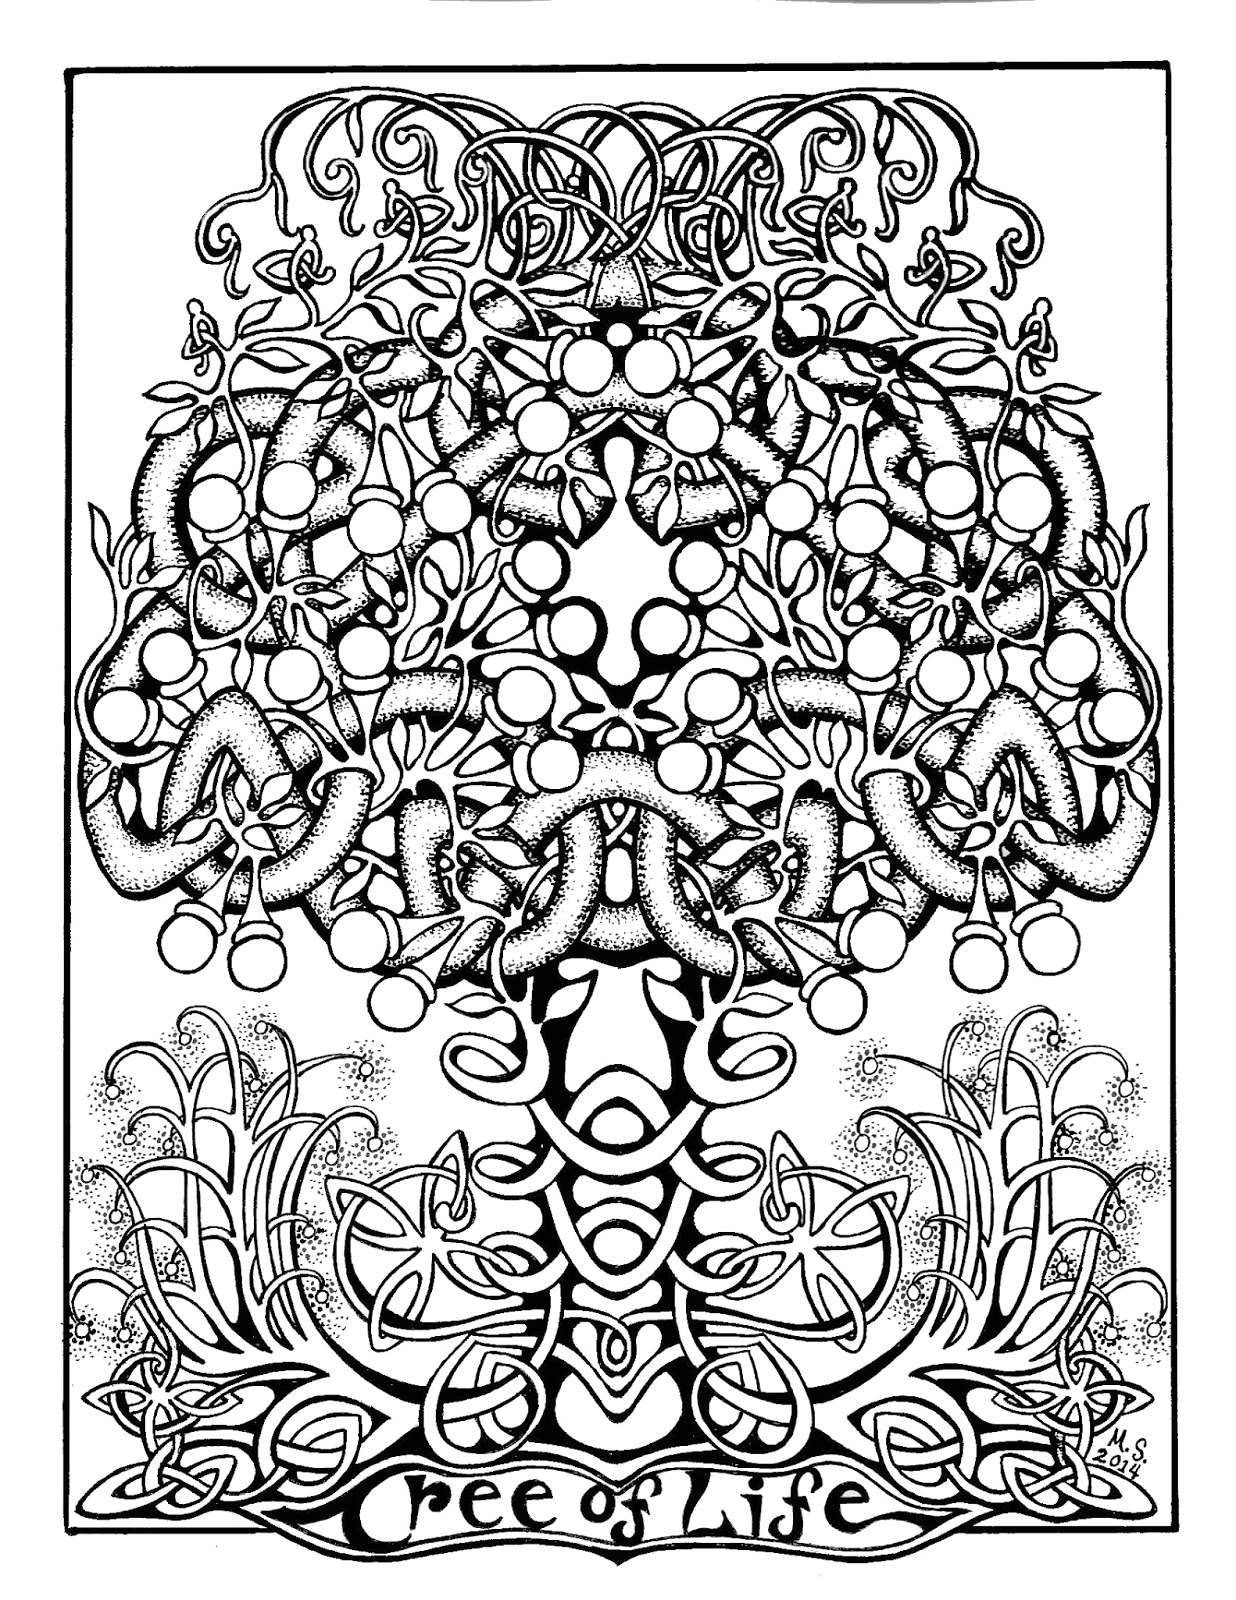 search cx= :cd7usewrz 4&cof=FORID:9&ie=UTF 8&q=tree of life coloring pages&sa=Search&sbox=tree of life coloring pages